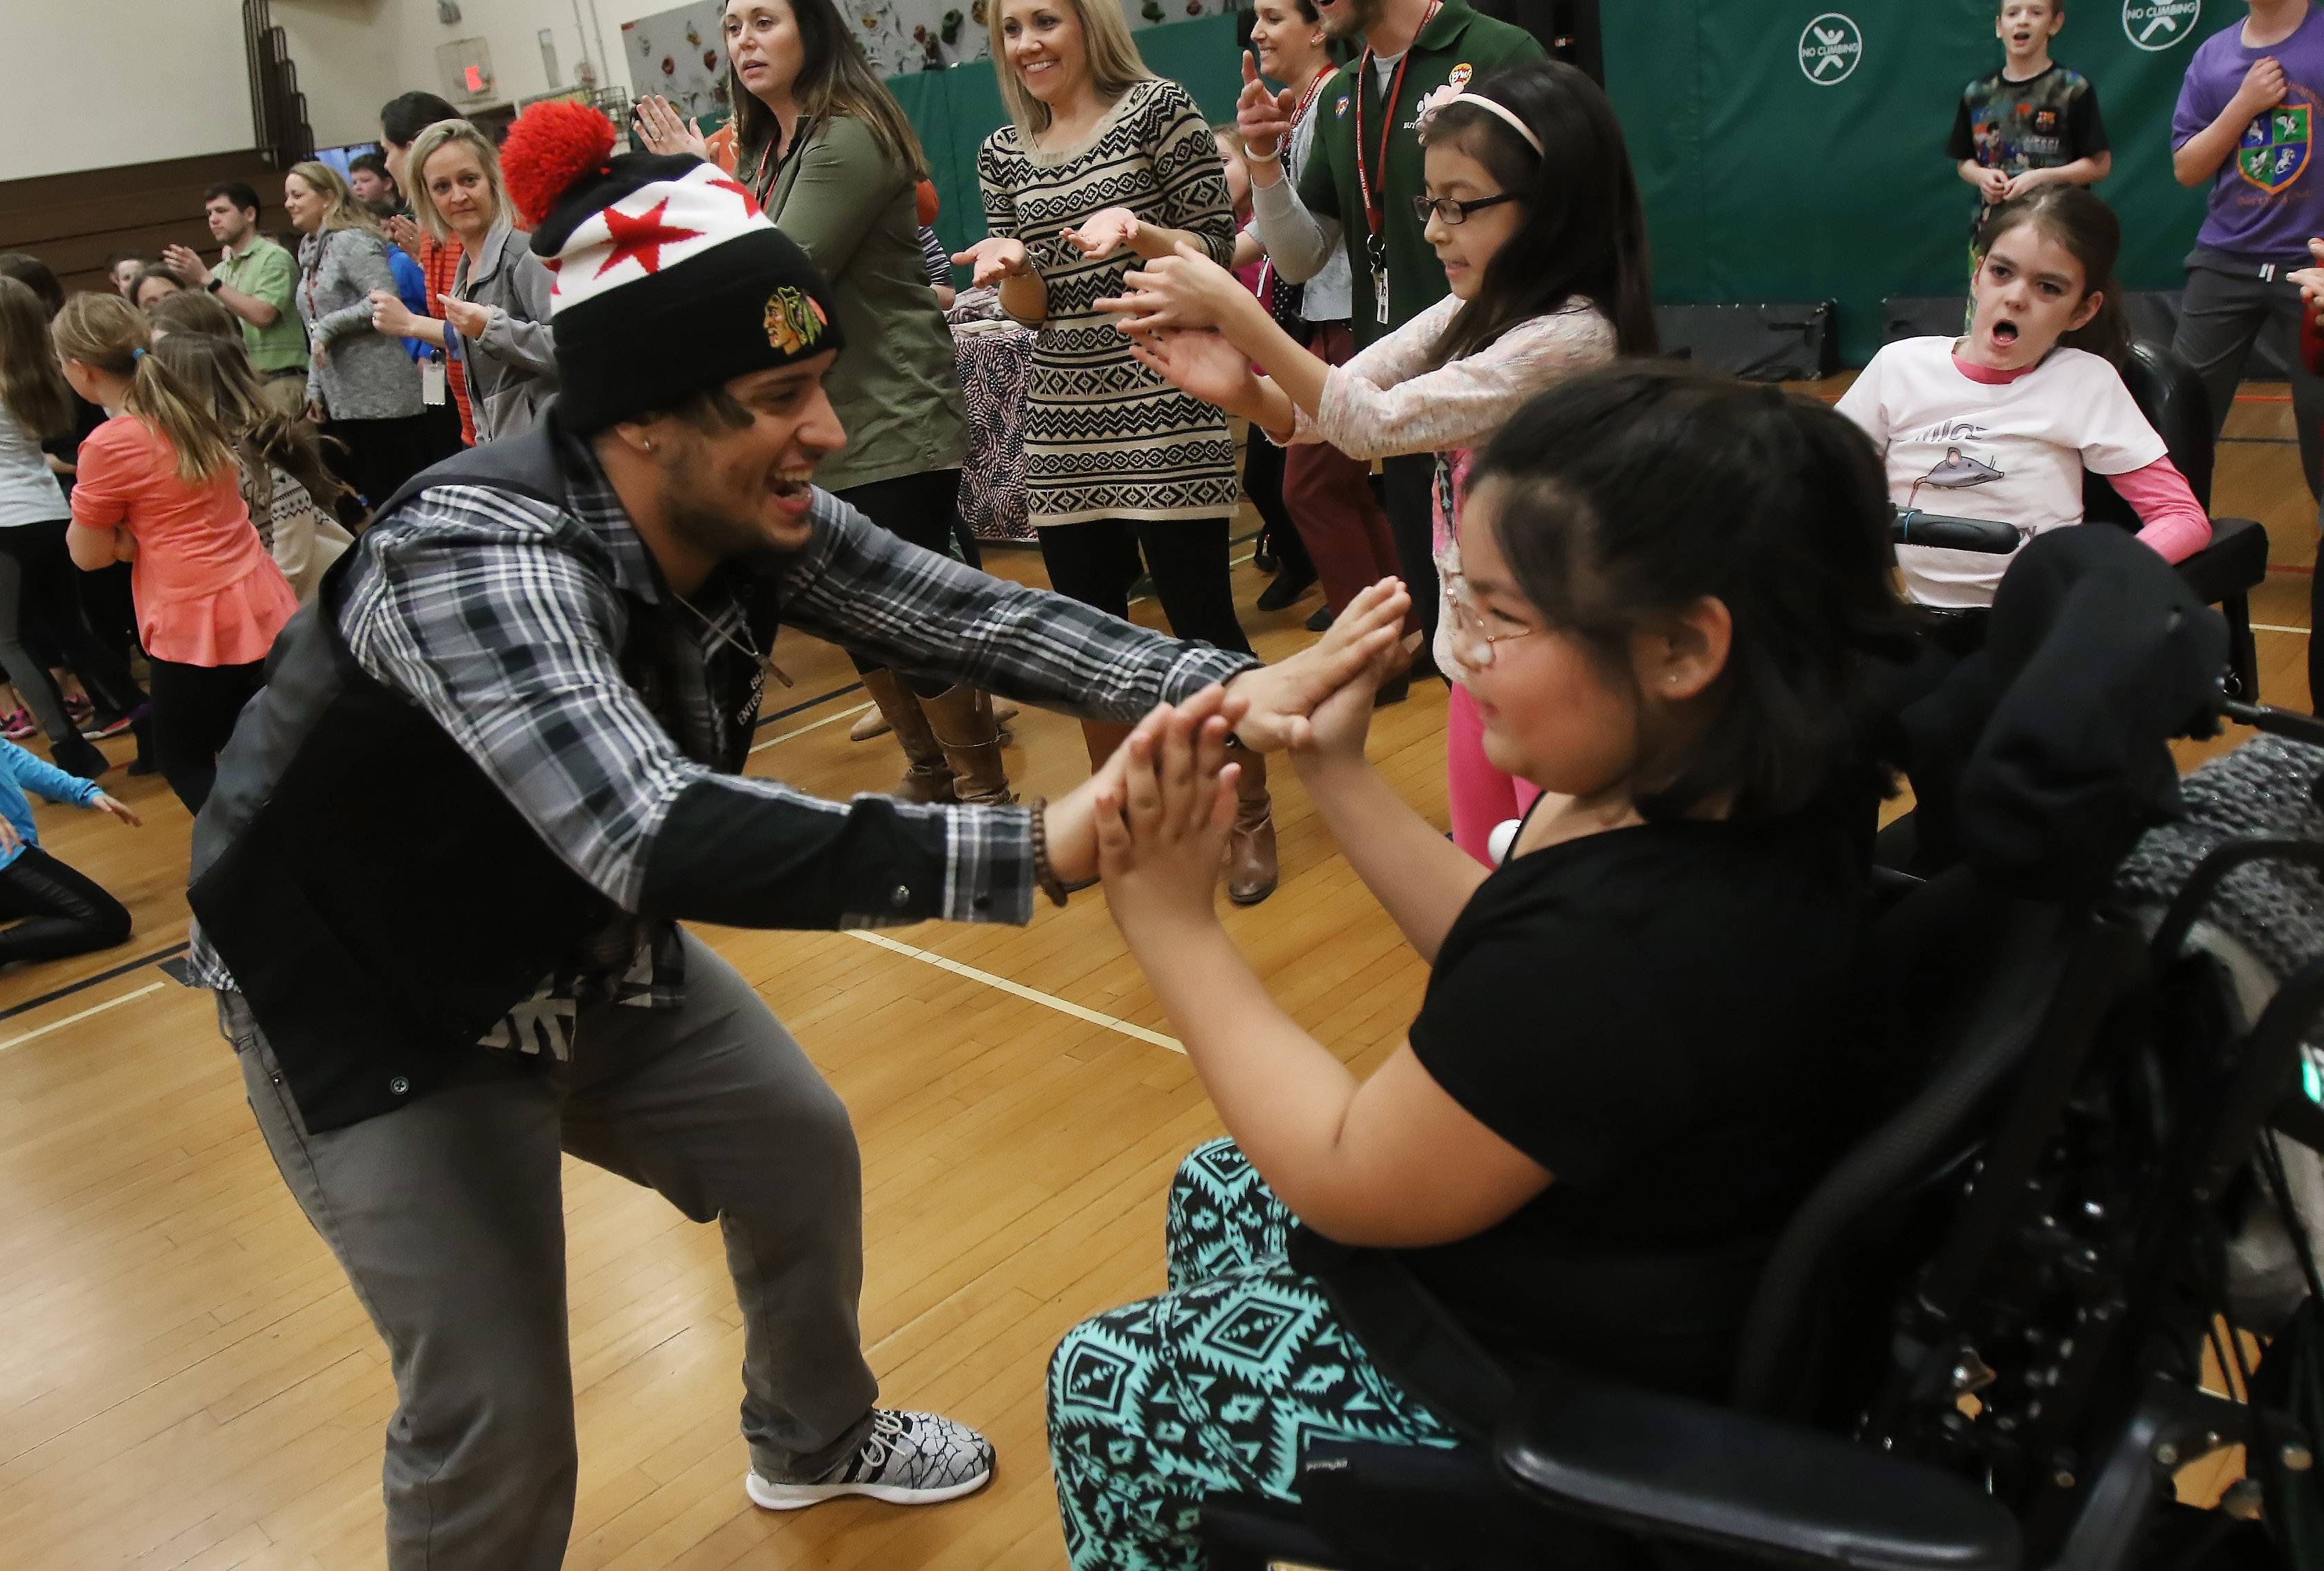 Pride (Raymond Masciopinto) dances with third grader Maura Nakanant during the Dr. Cool and Pride show Tuesday at Butterfield School in Libertyville. Dr. Cool and his crew interacted with students dancing and singing while teaching lessons of empowerment.